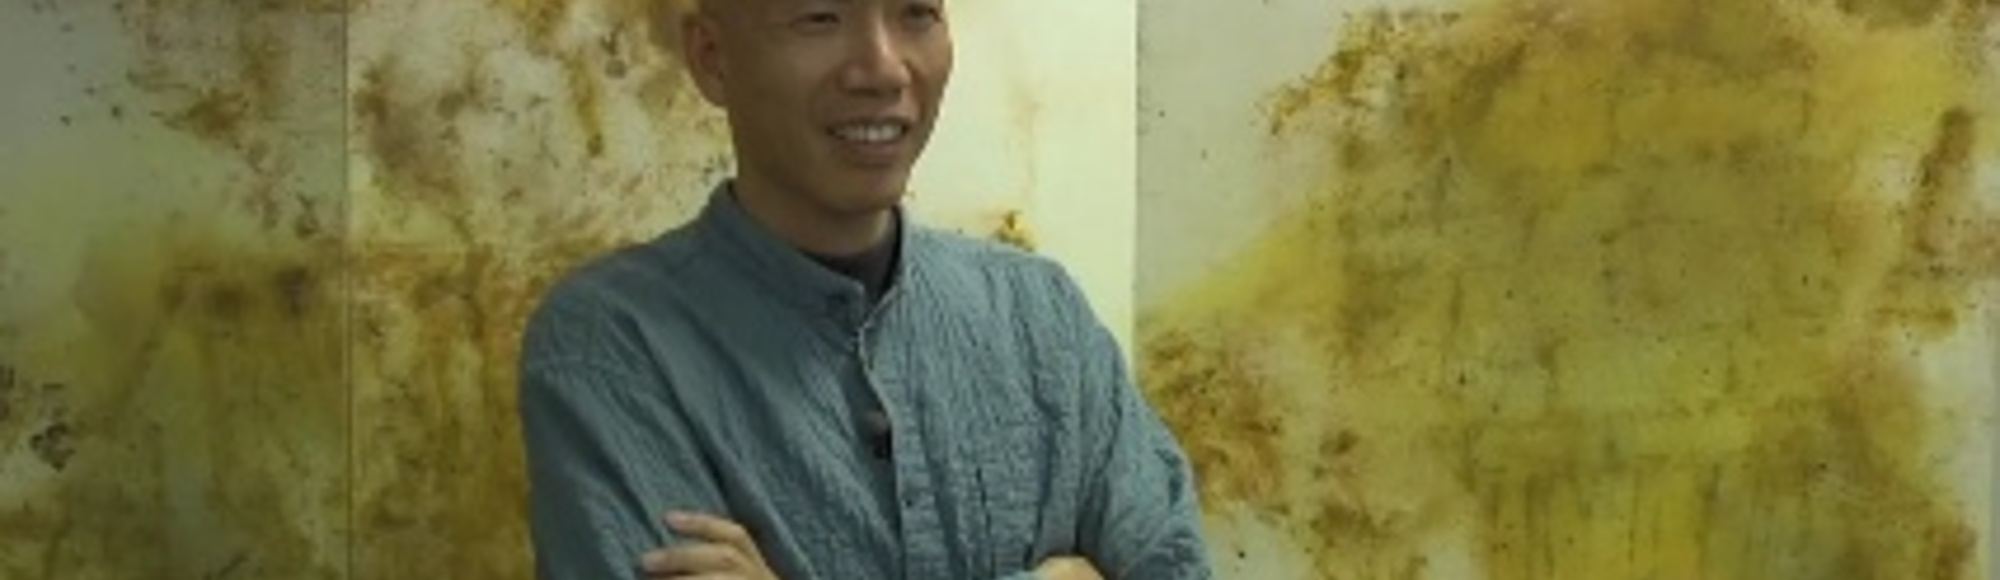 Cai Guo-Qiang and the Art of Fire Medicine